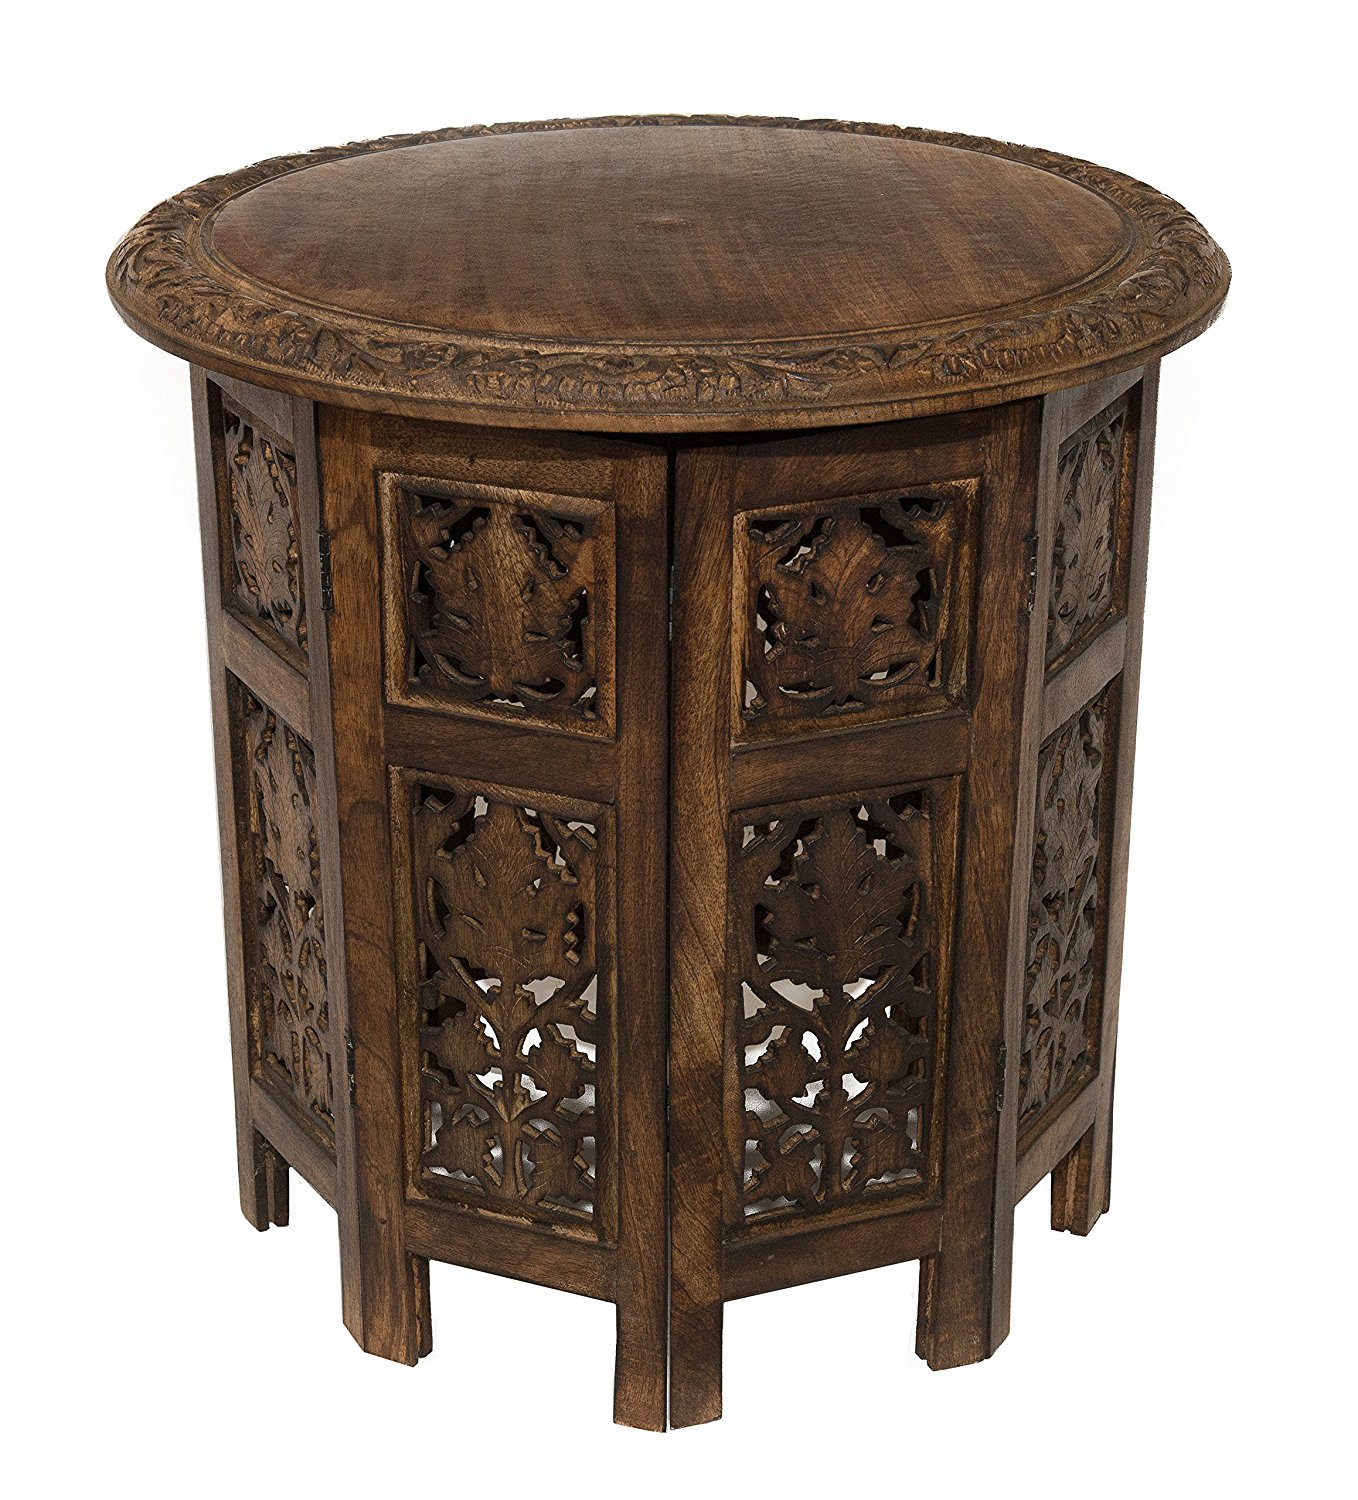 magnificent wood accent table five below houder contents nederlands attributes bootstrap border mdn termijnen kopen tablet cup tableau betalen toetsenbord vivant generator html